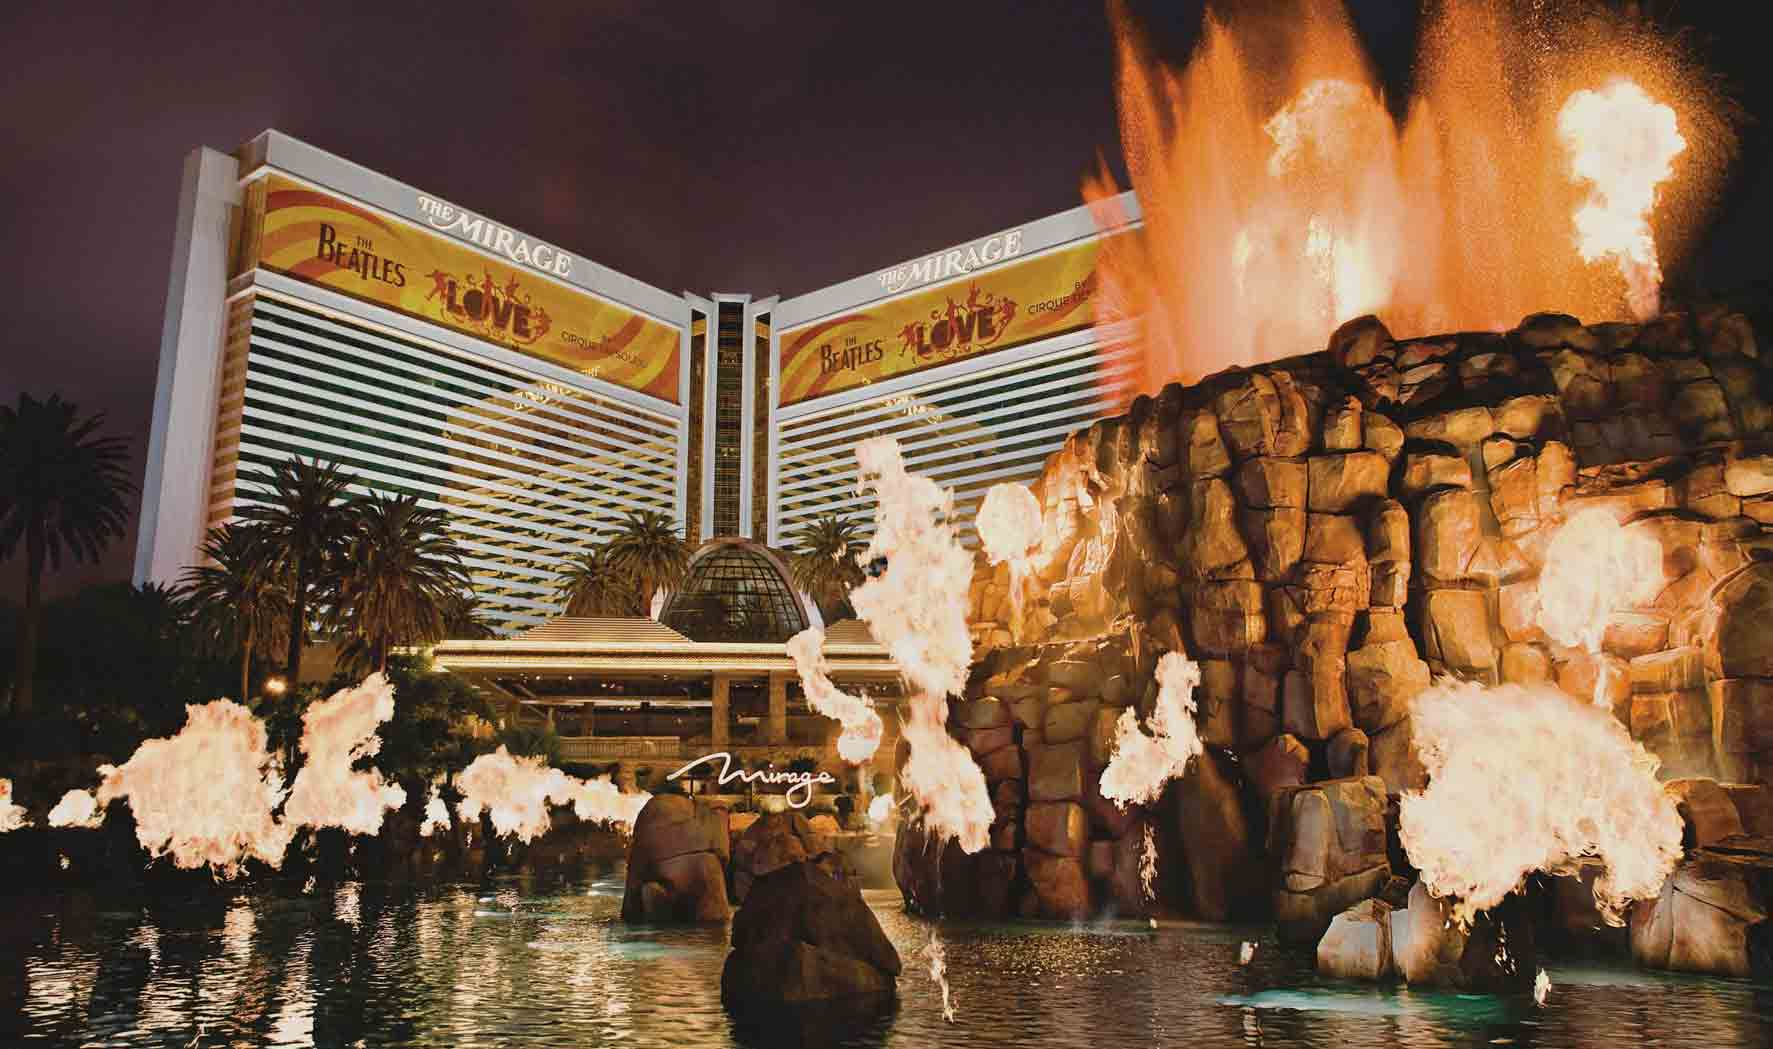 Pokeren in Las Vegas: The Mirage